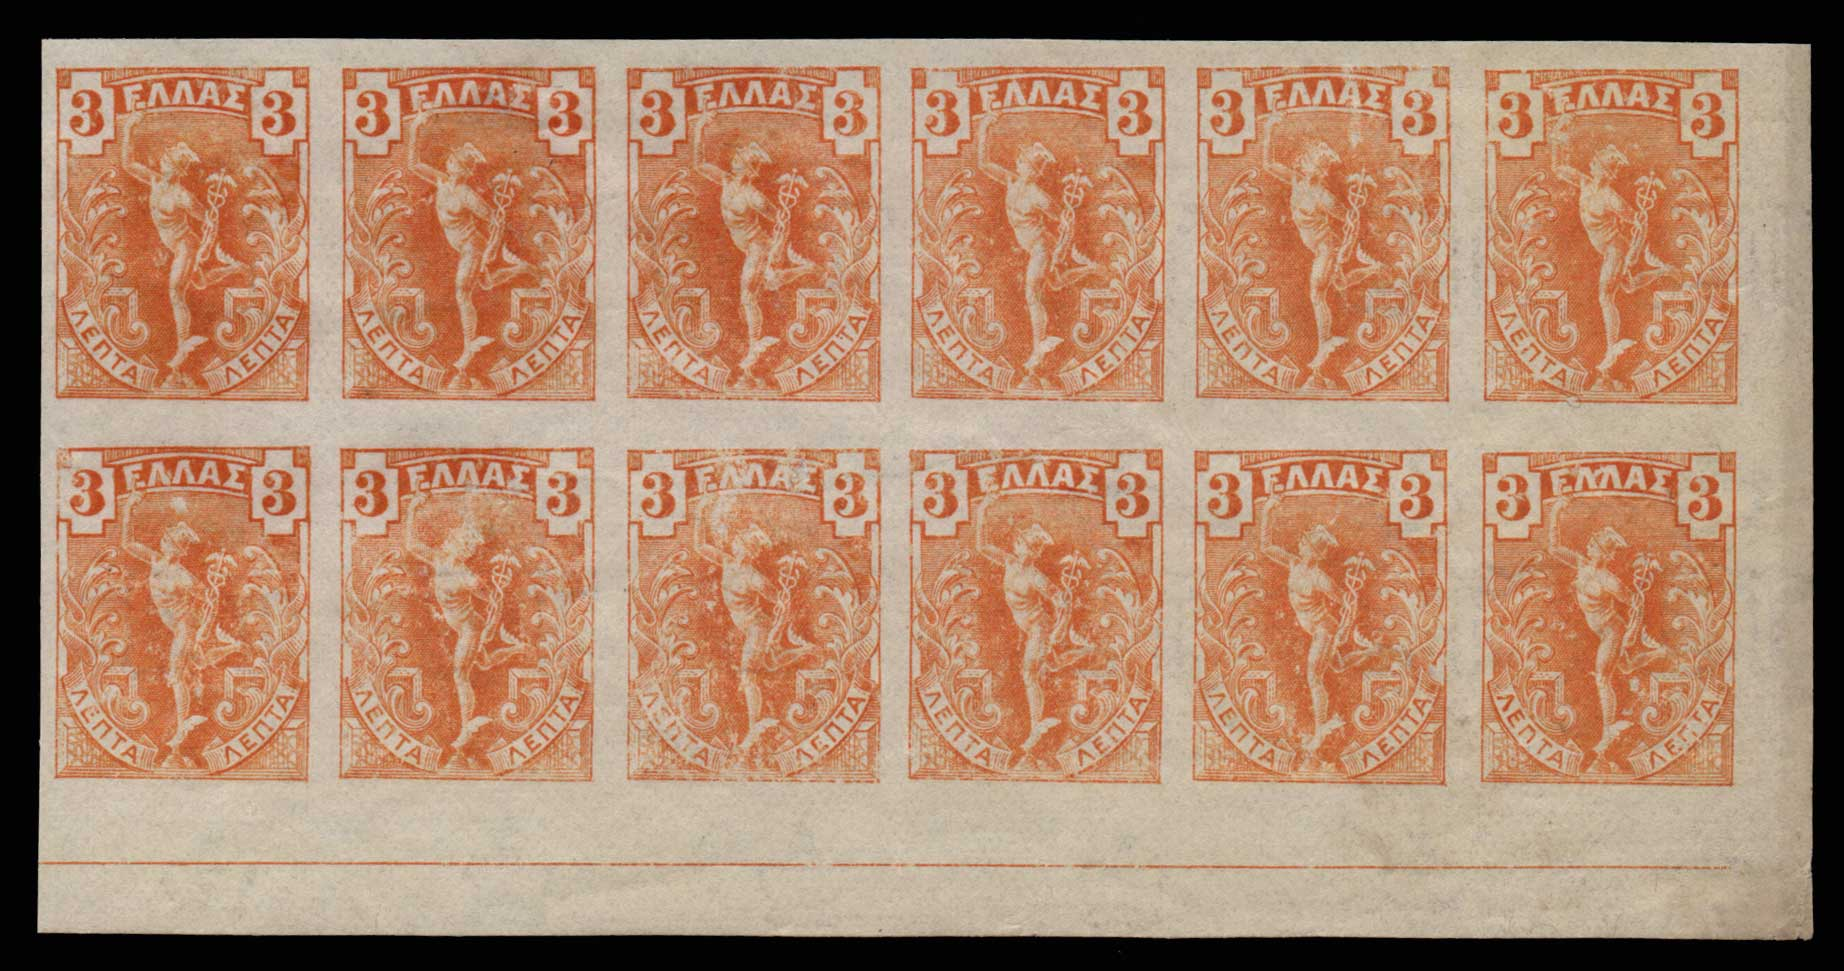 Lot 553 - -  1901/02 FLYING MERCURY & A.M. 1901/02 FLYING MERCURY & A.M. -  Athens Auctions Public Auction 88 General Stamp Sale